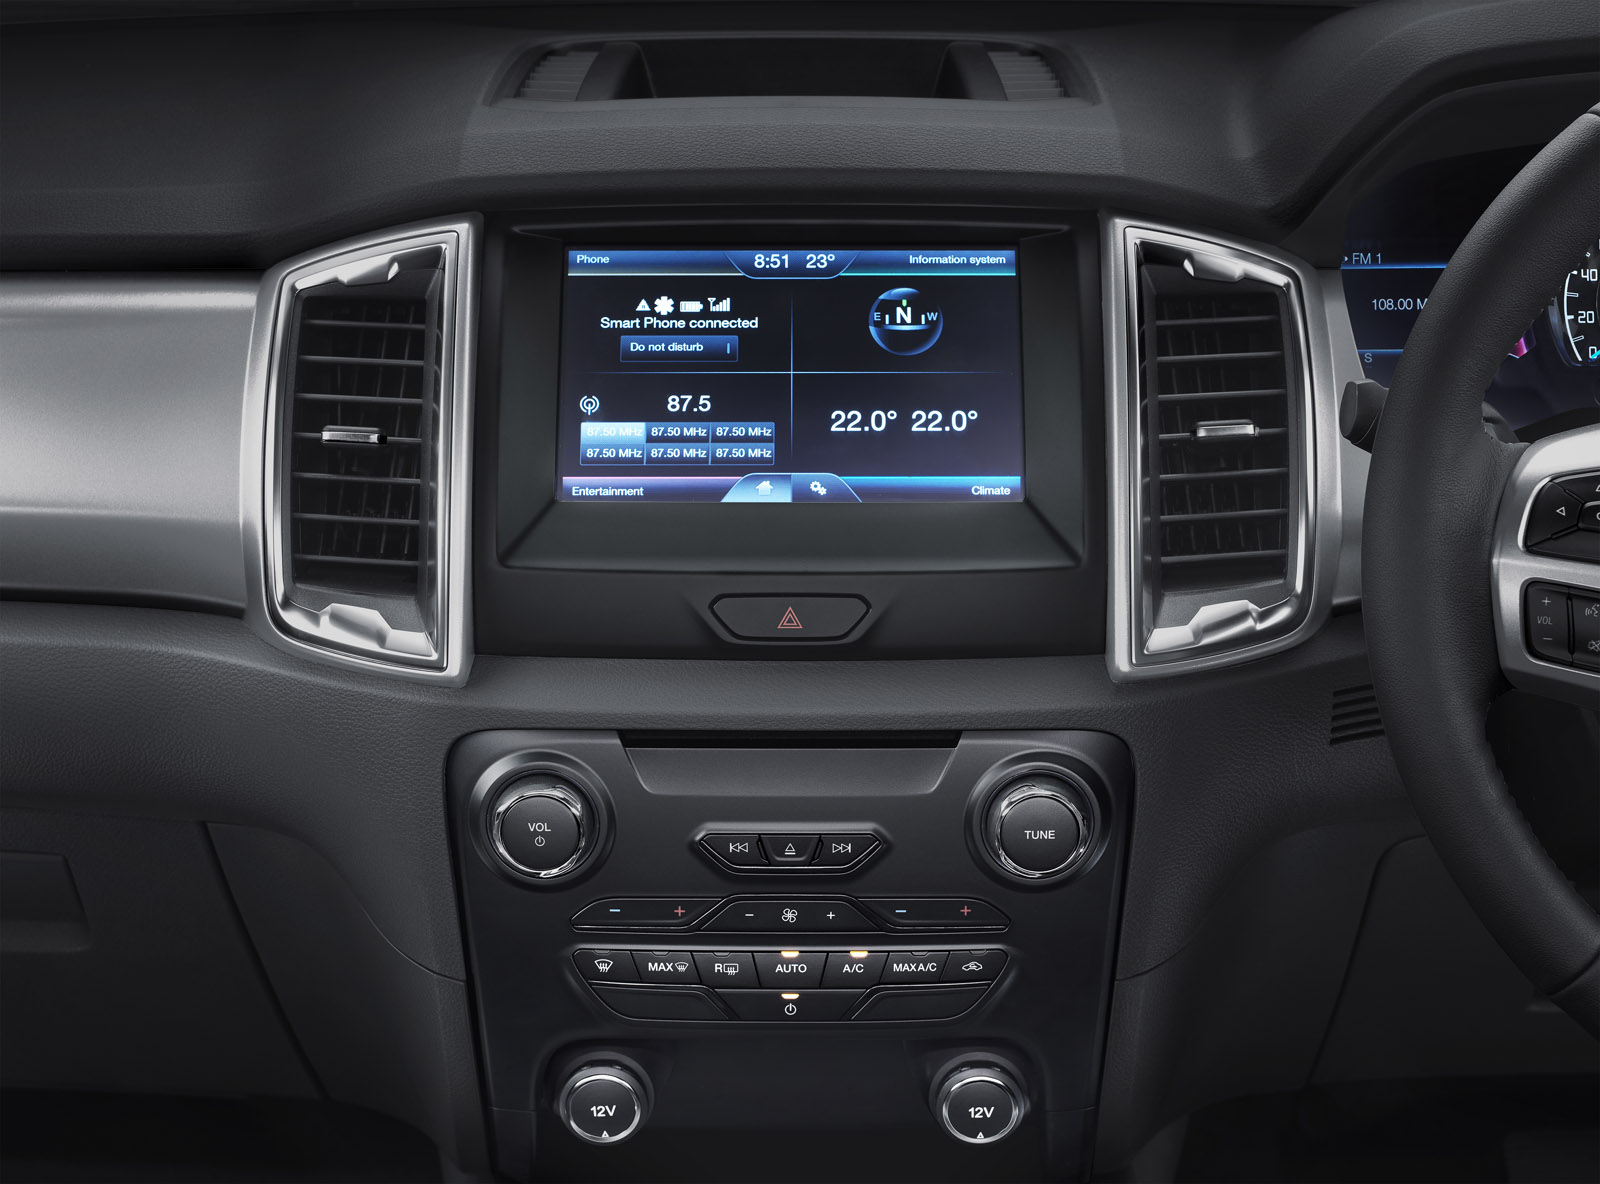 Ford Sync 3 better for driving than Apple CarPlay and